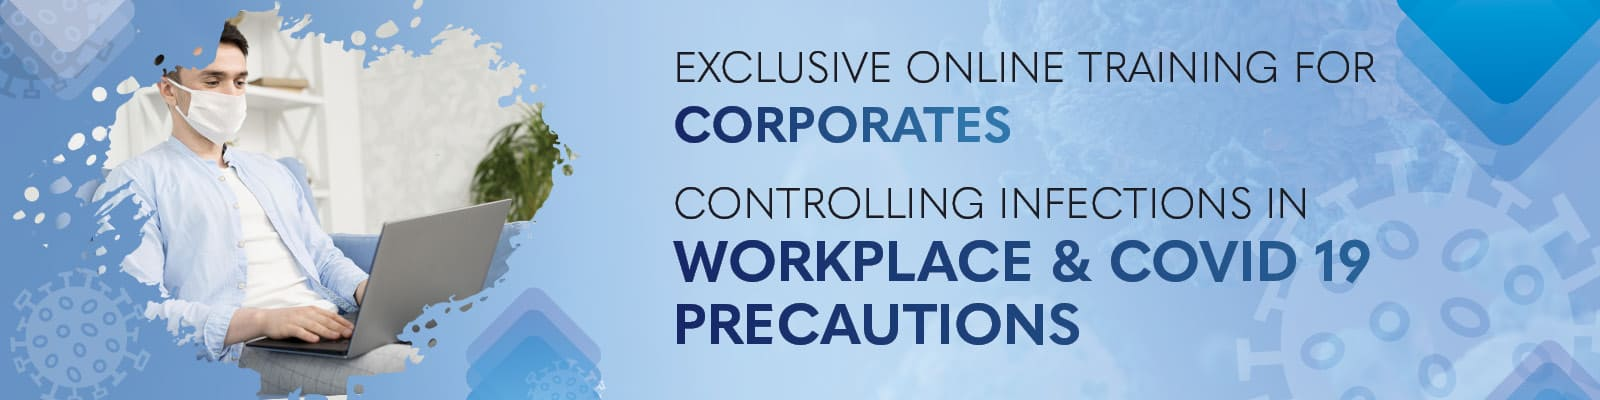 controlling-infections-in-workplace-and-covid-19-precautions